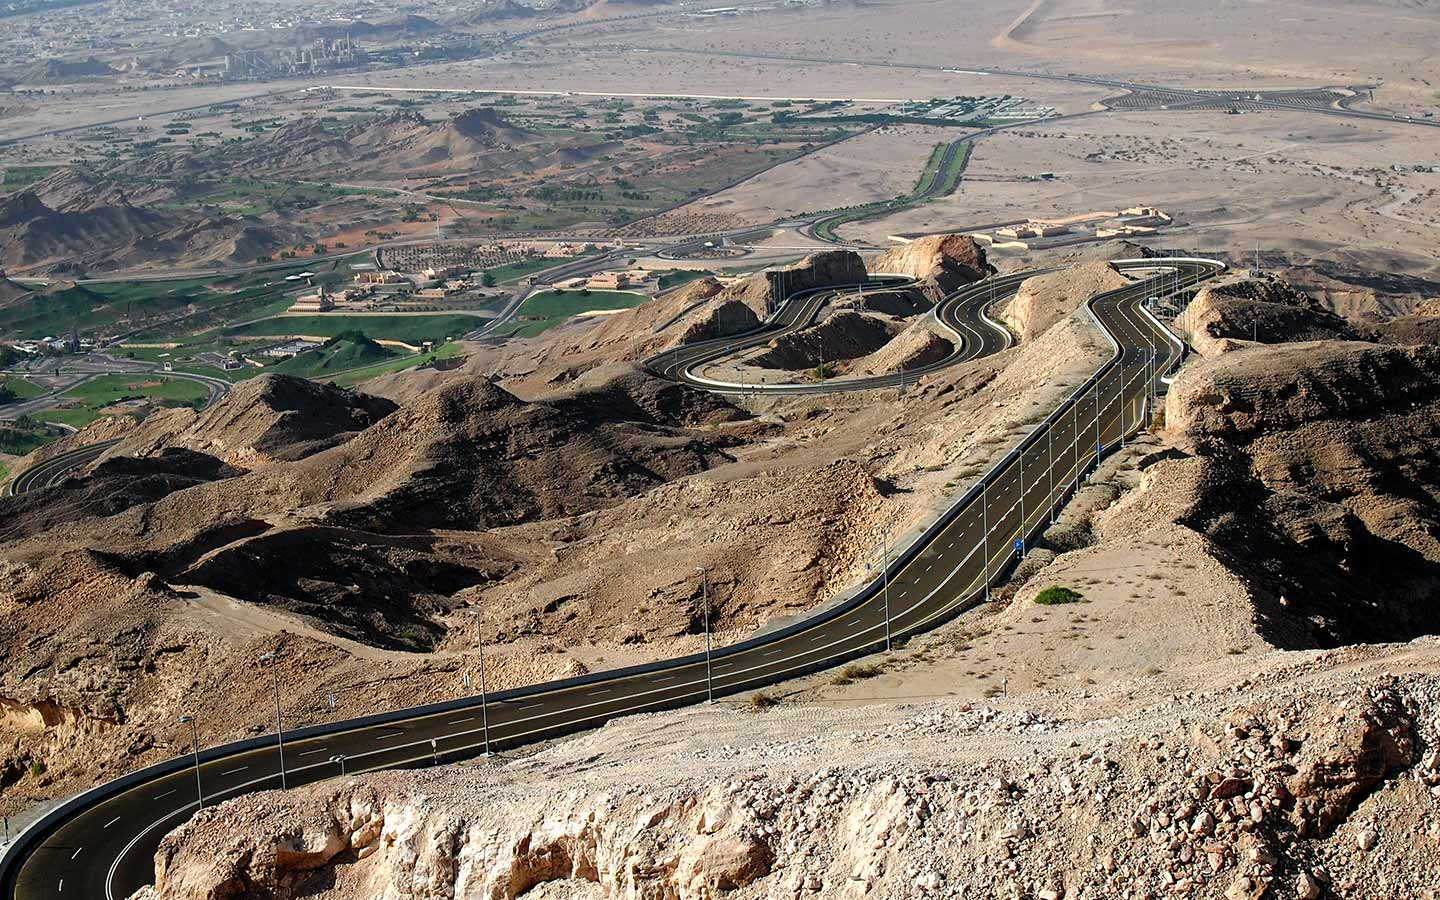 Jebel Hafeet is a historic area of the UAE where one can find tombs